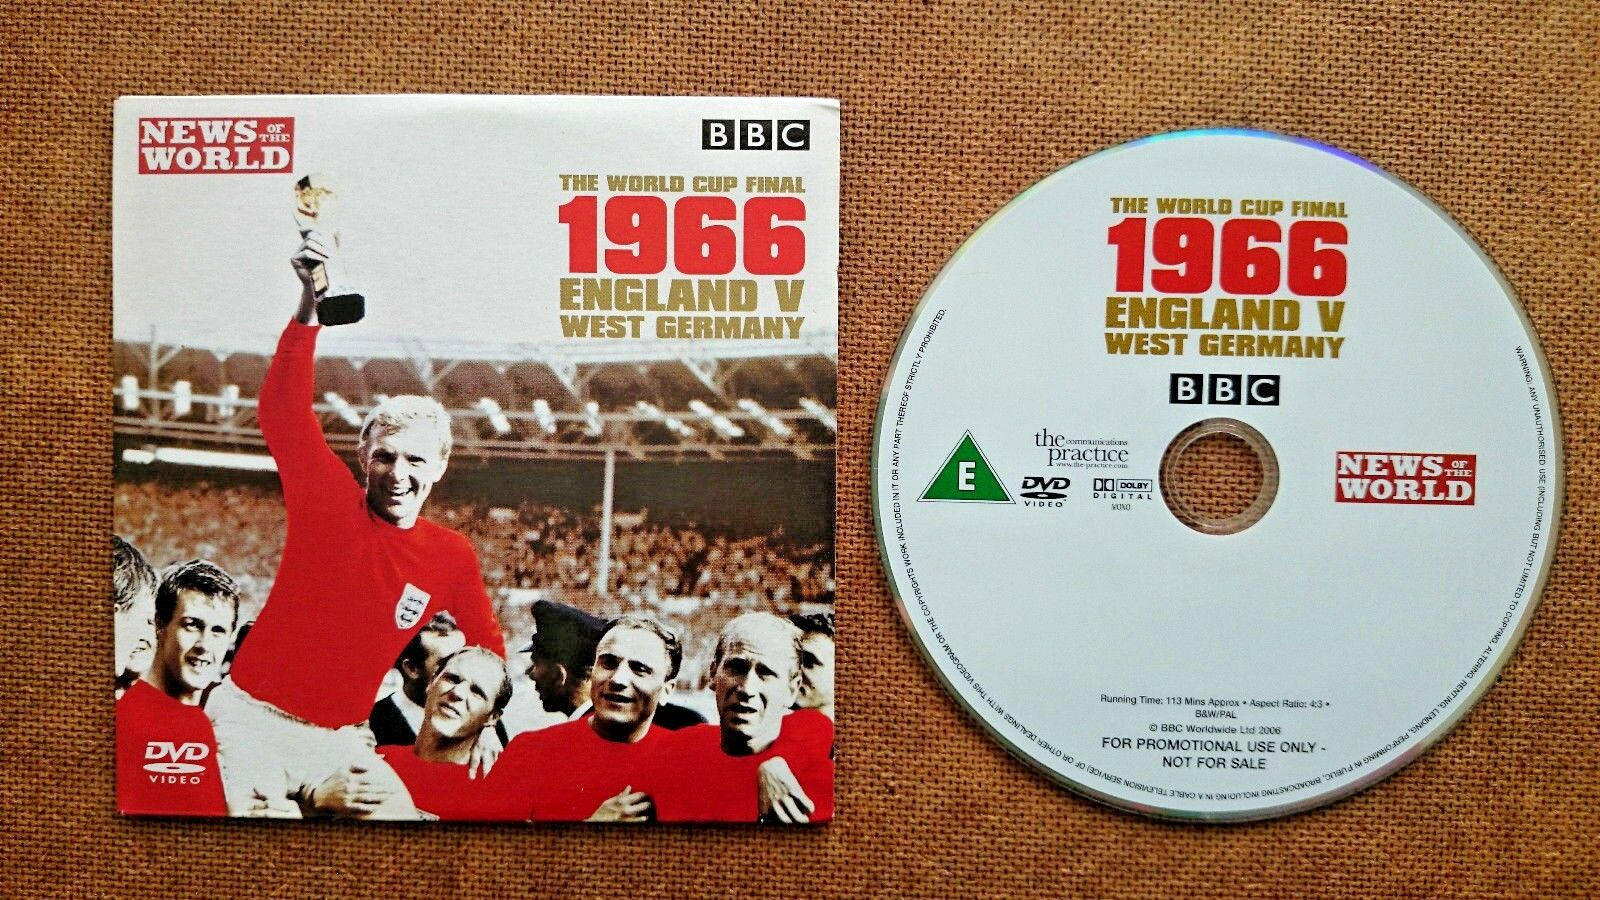 1966 World Cup Final England v Germany  DVD  Released by The News of the World